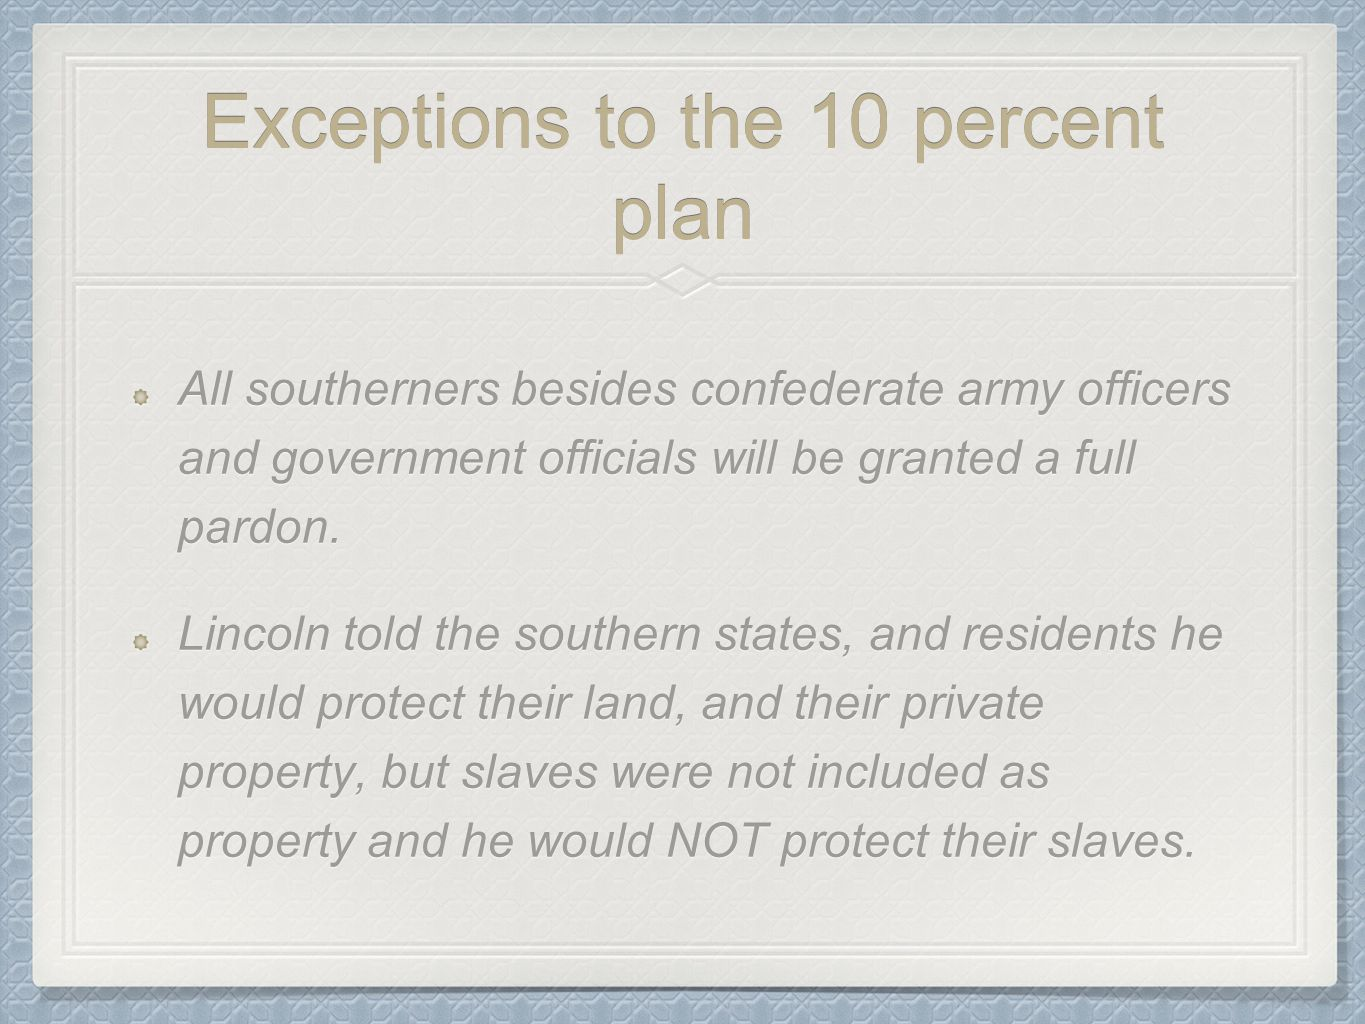 Exceptions to the 10 percent plan All southerners besides confederate army officers and government officials will be granted a full pardon. Lincoln to